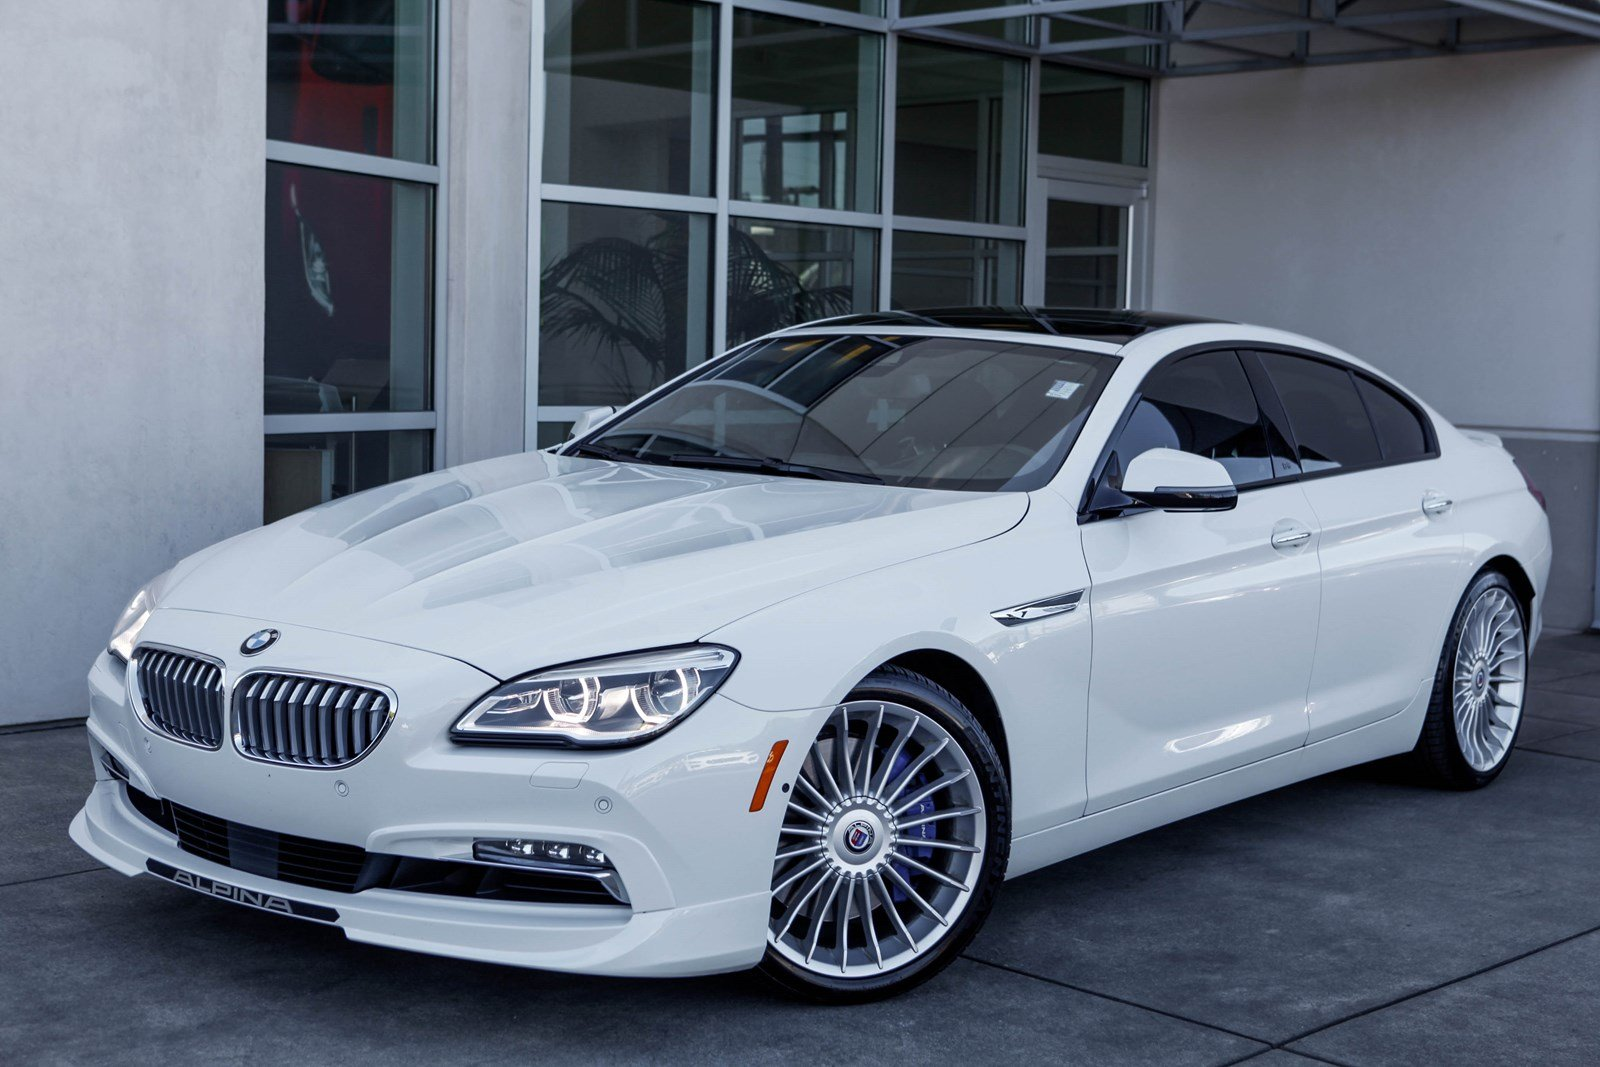 BMW Alpina B6 >> Pre Owned 2018 Bmw 6 Series Alpina B6 Xdrive With Navigation Awd